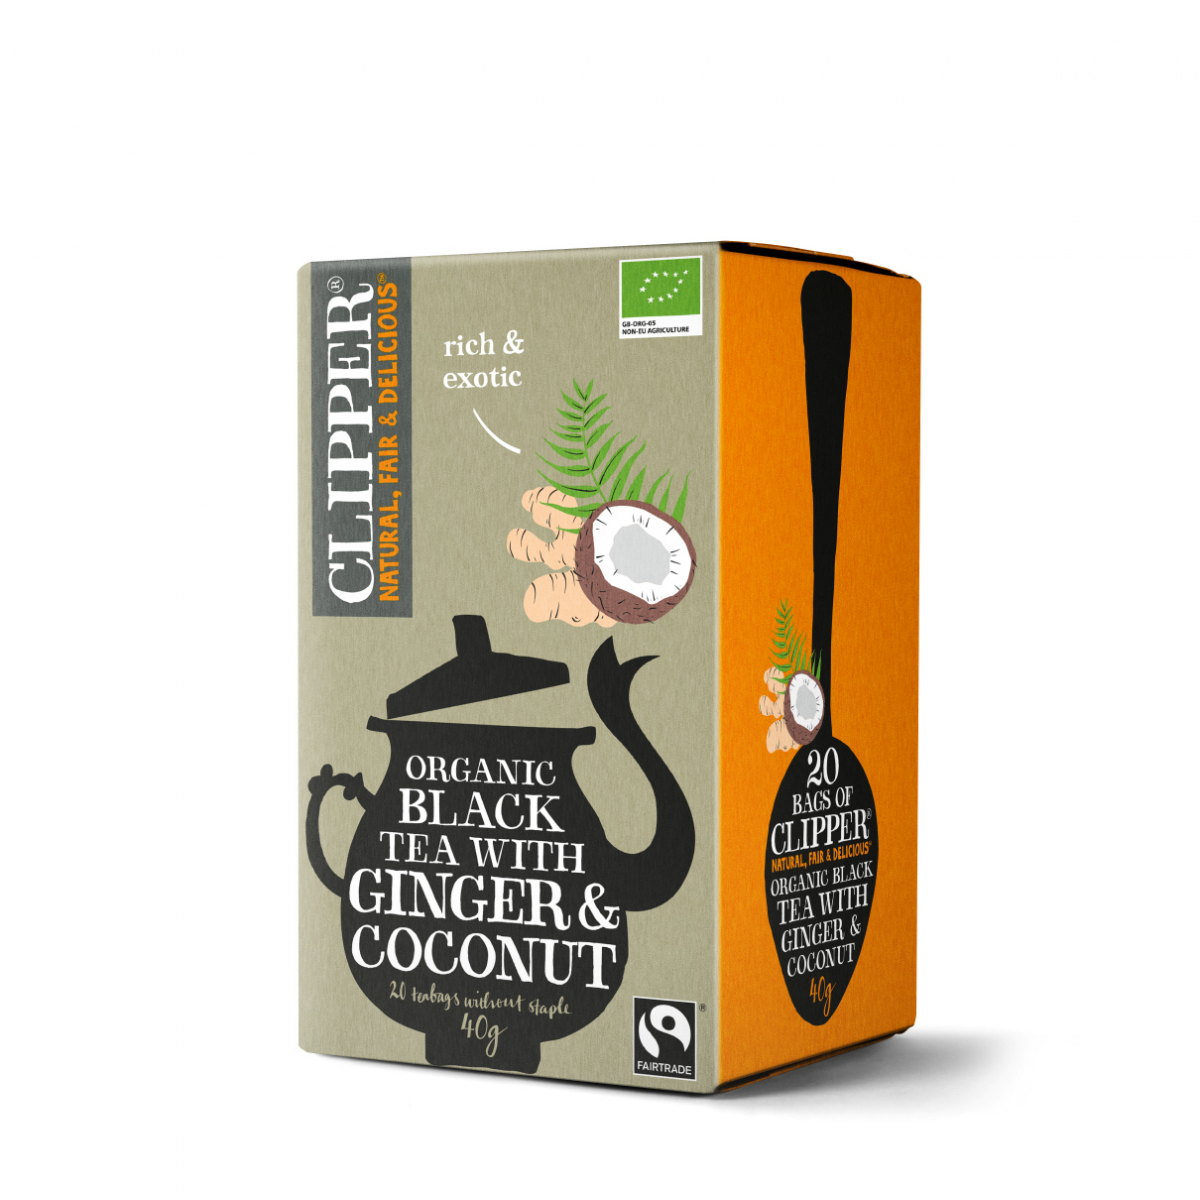 Black Tea Ginger & Coconut